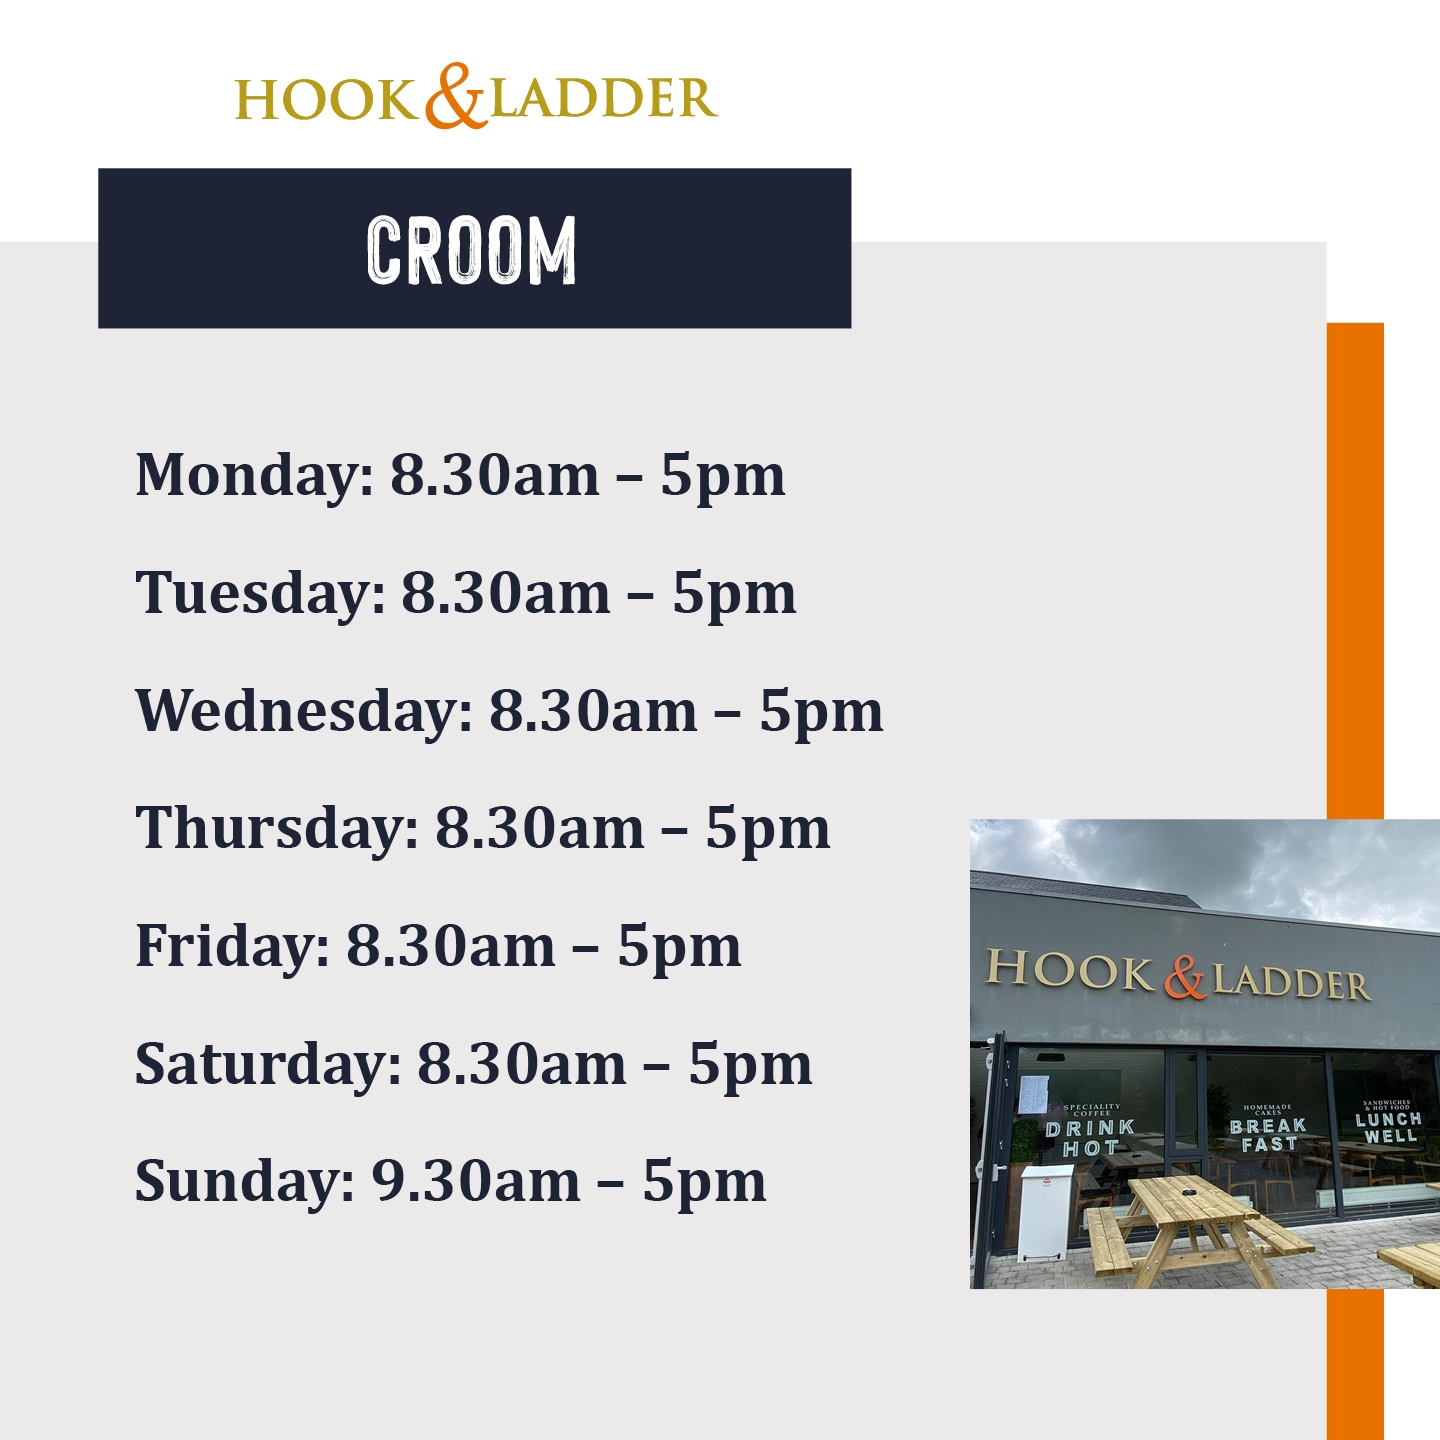 Hook and Ladder Croom Opening Times